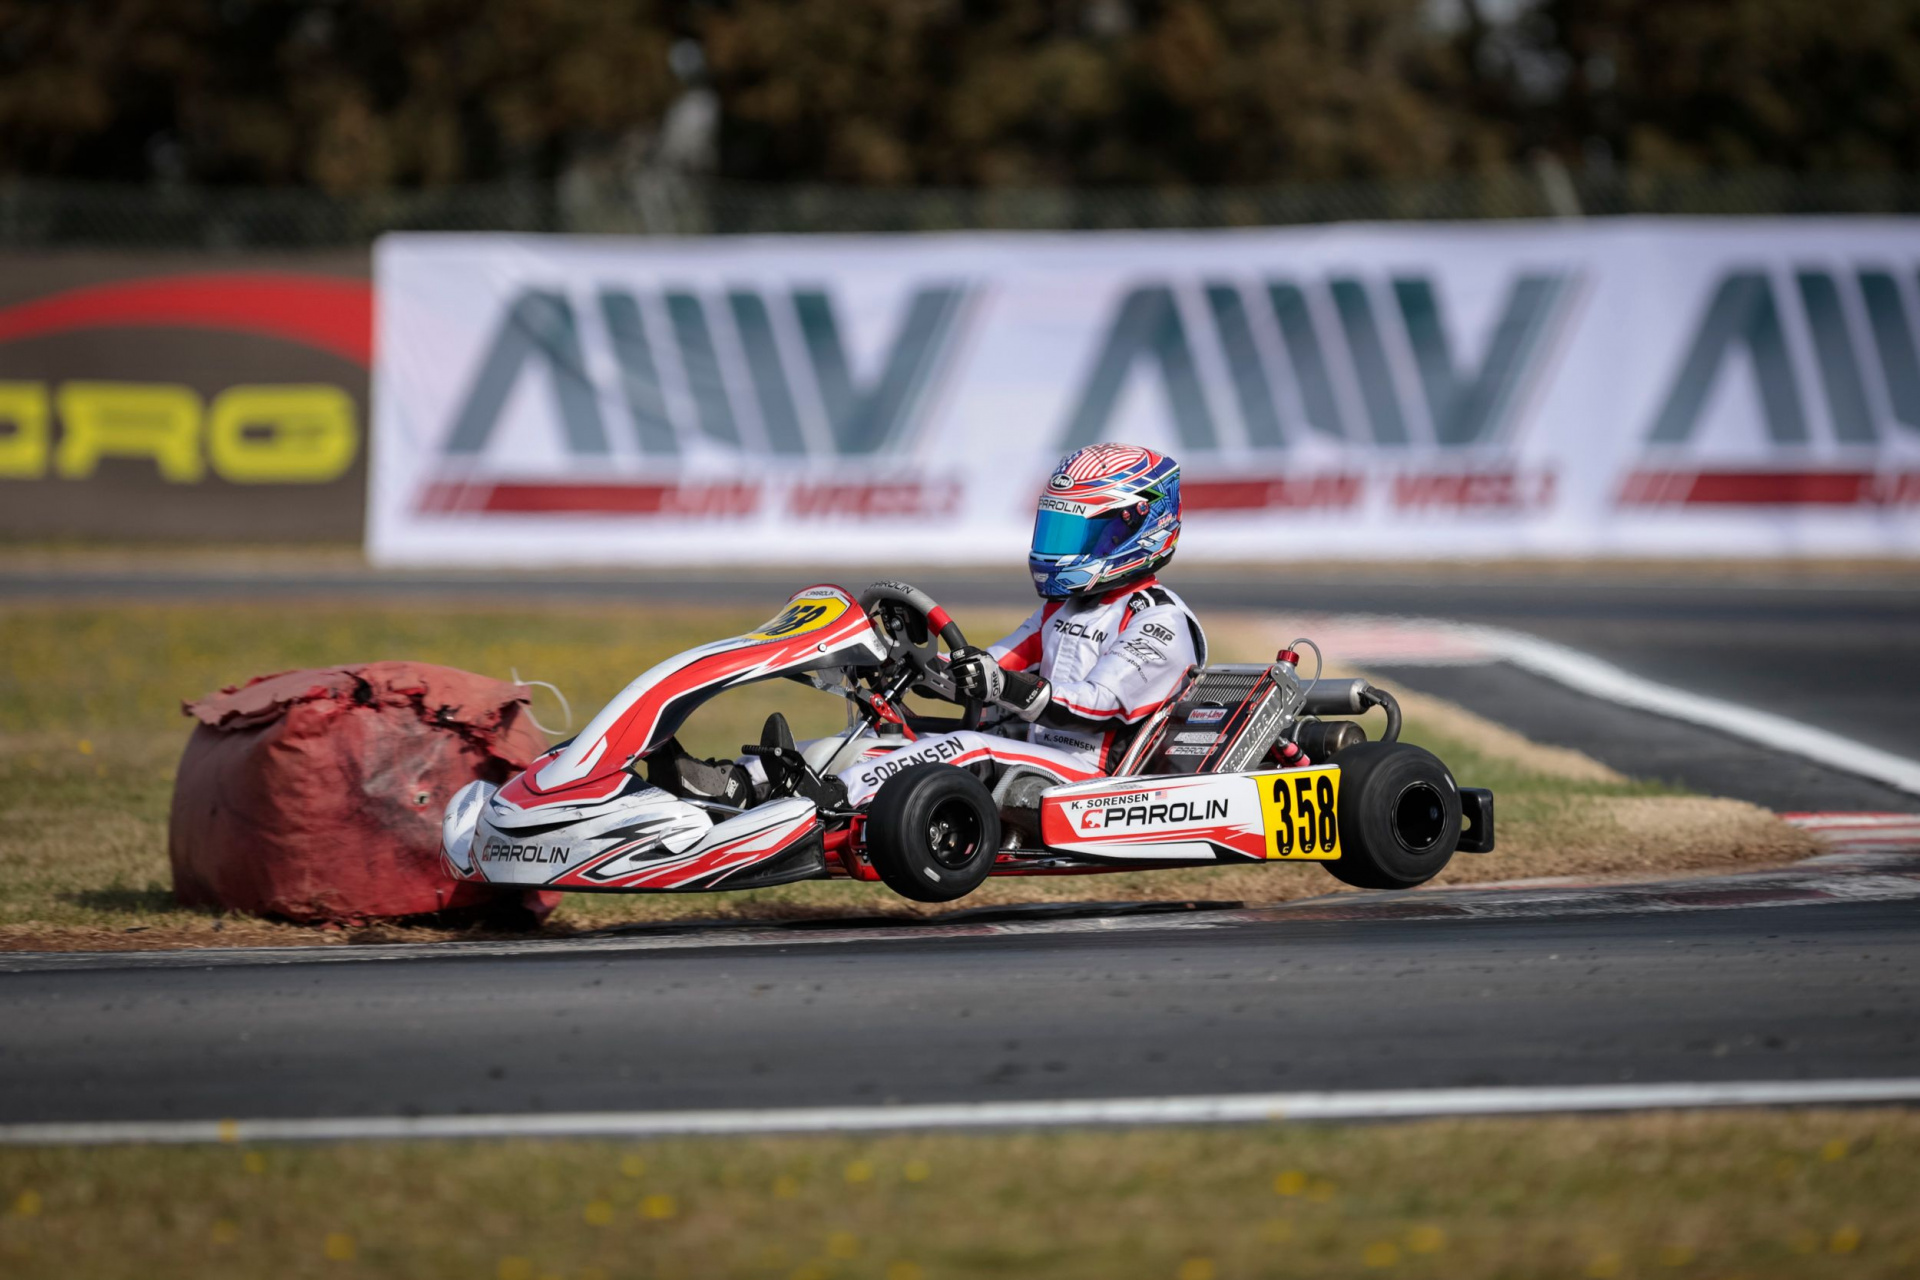 Kai Sorensen unlucky but competitive in the second round of WSK Super Master Series